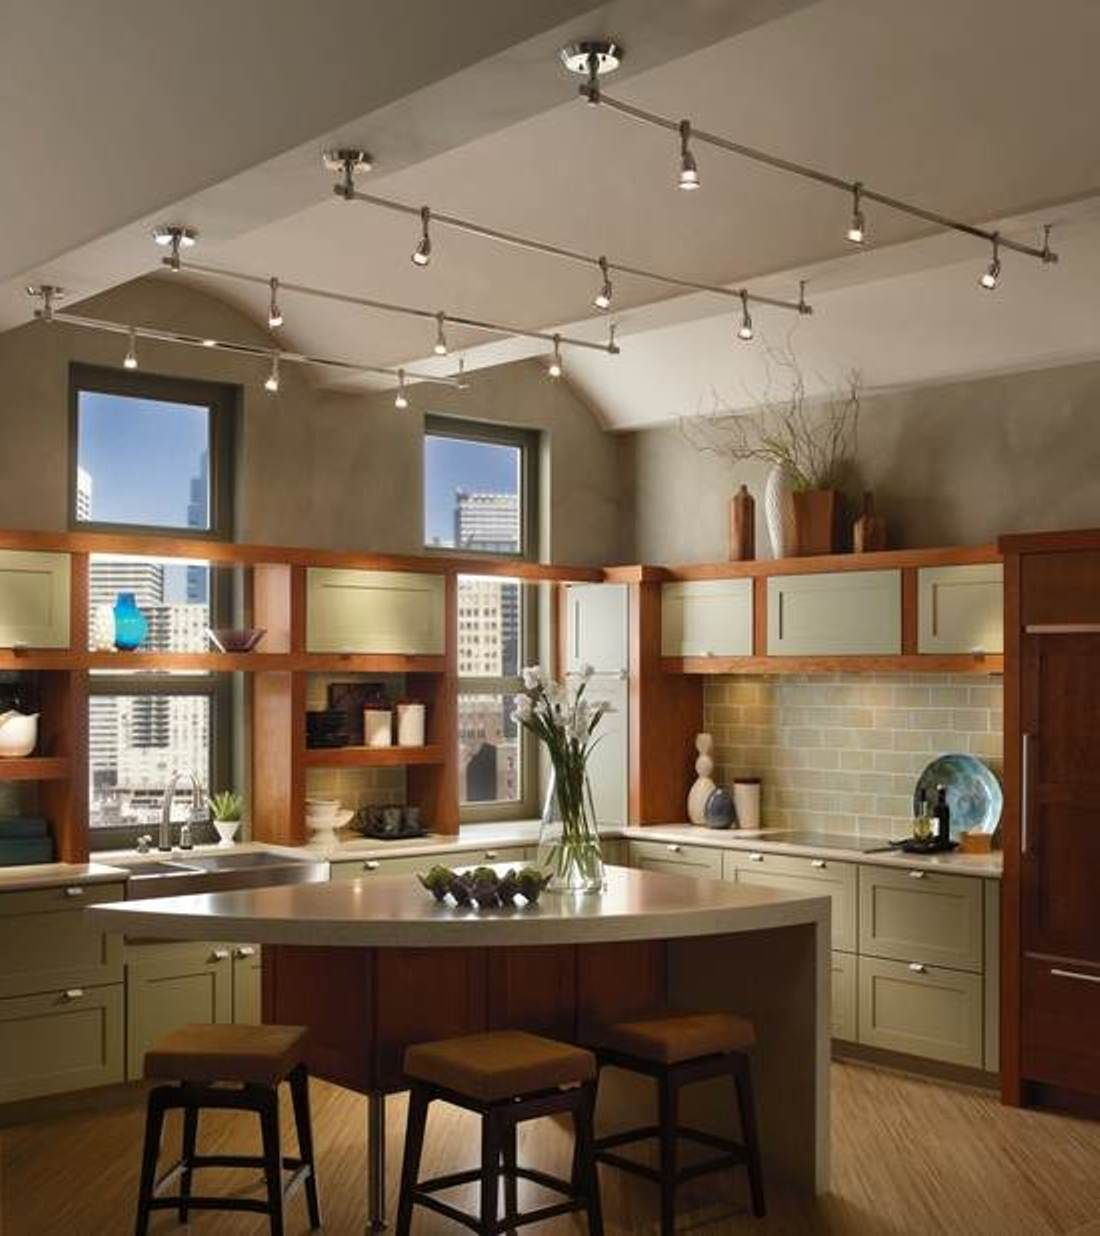 Mesmerizing Vaulted Ceiling Lighting Kitchen Island